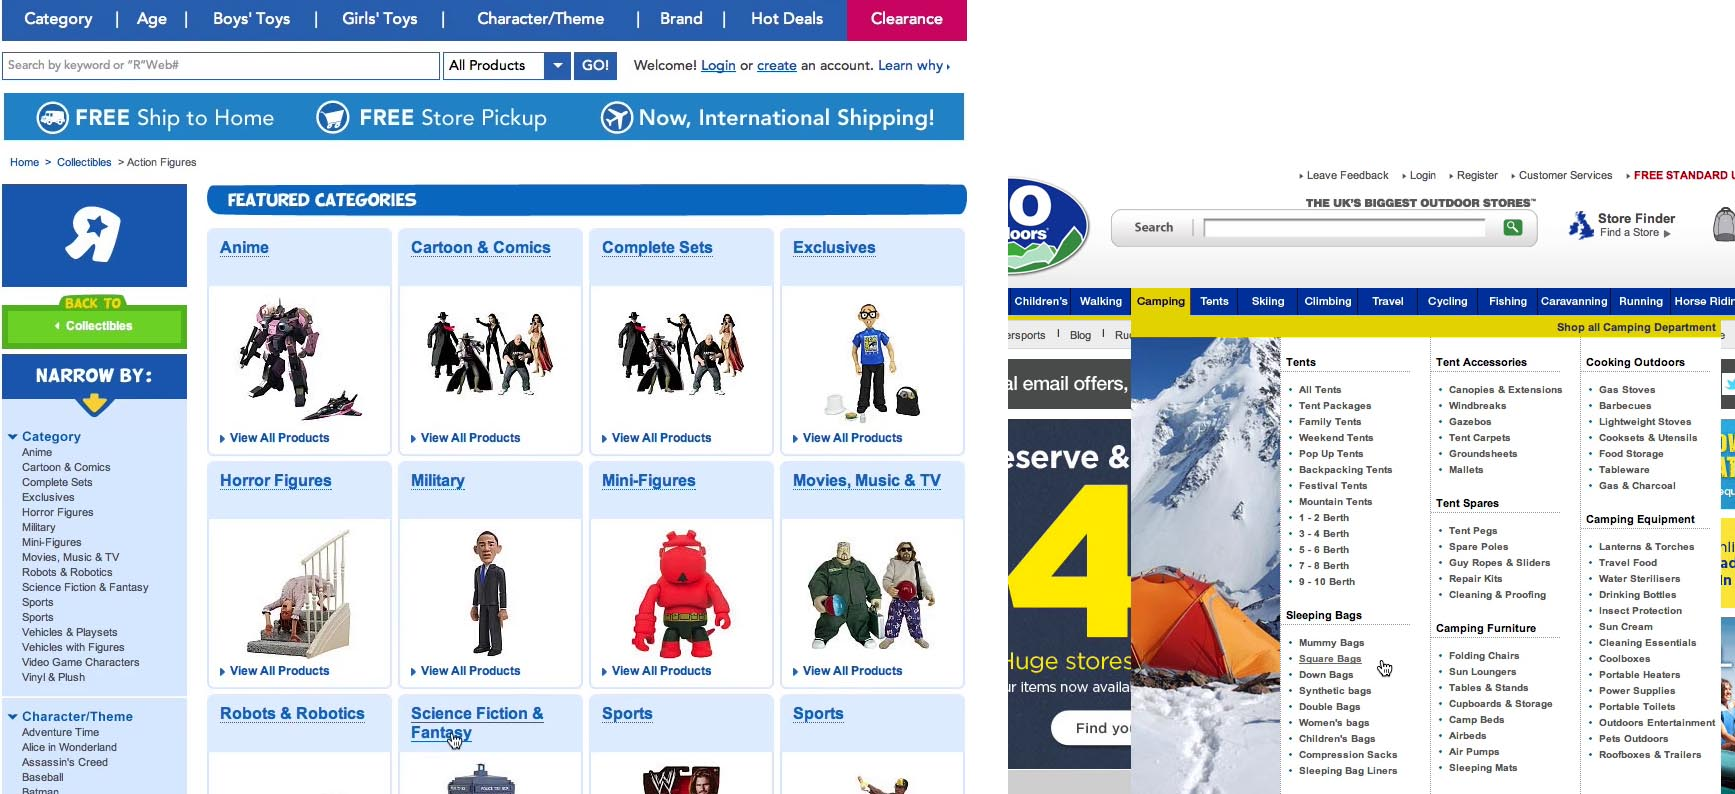 Found 5 products across 1 categories showing 1 5 products - During Testing Of Toys R Us The Intermediary Category Pages Helped The Subjects Visualize The Categories With Industry Jargon Naming Which Would Otherwise